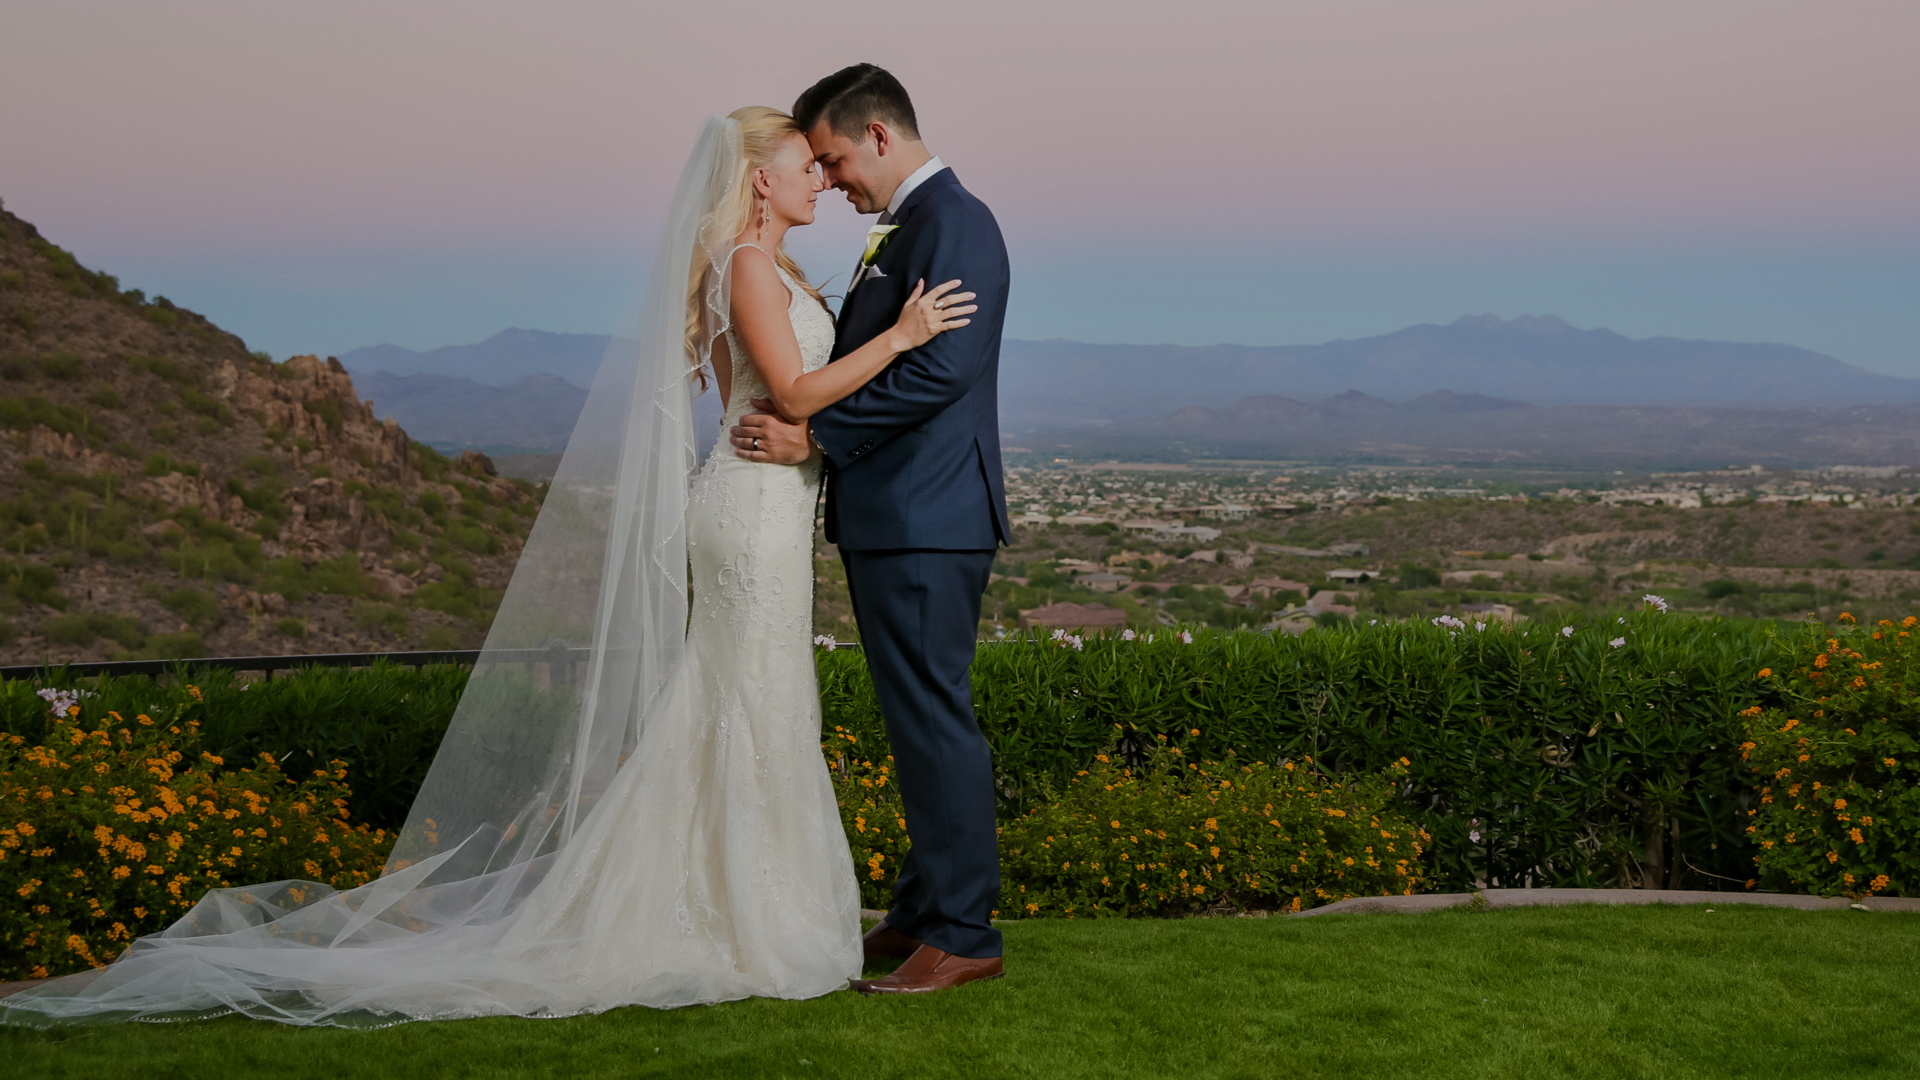 Check portfolios, pricing and availability for wedding photographers in Phoenix